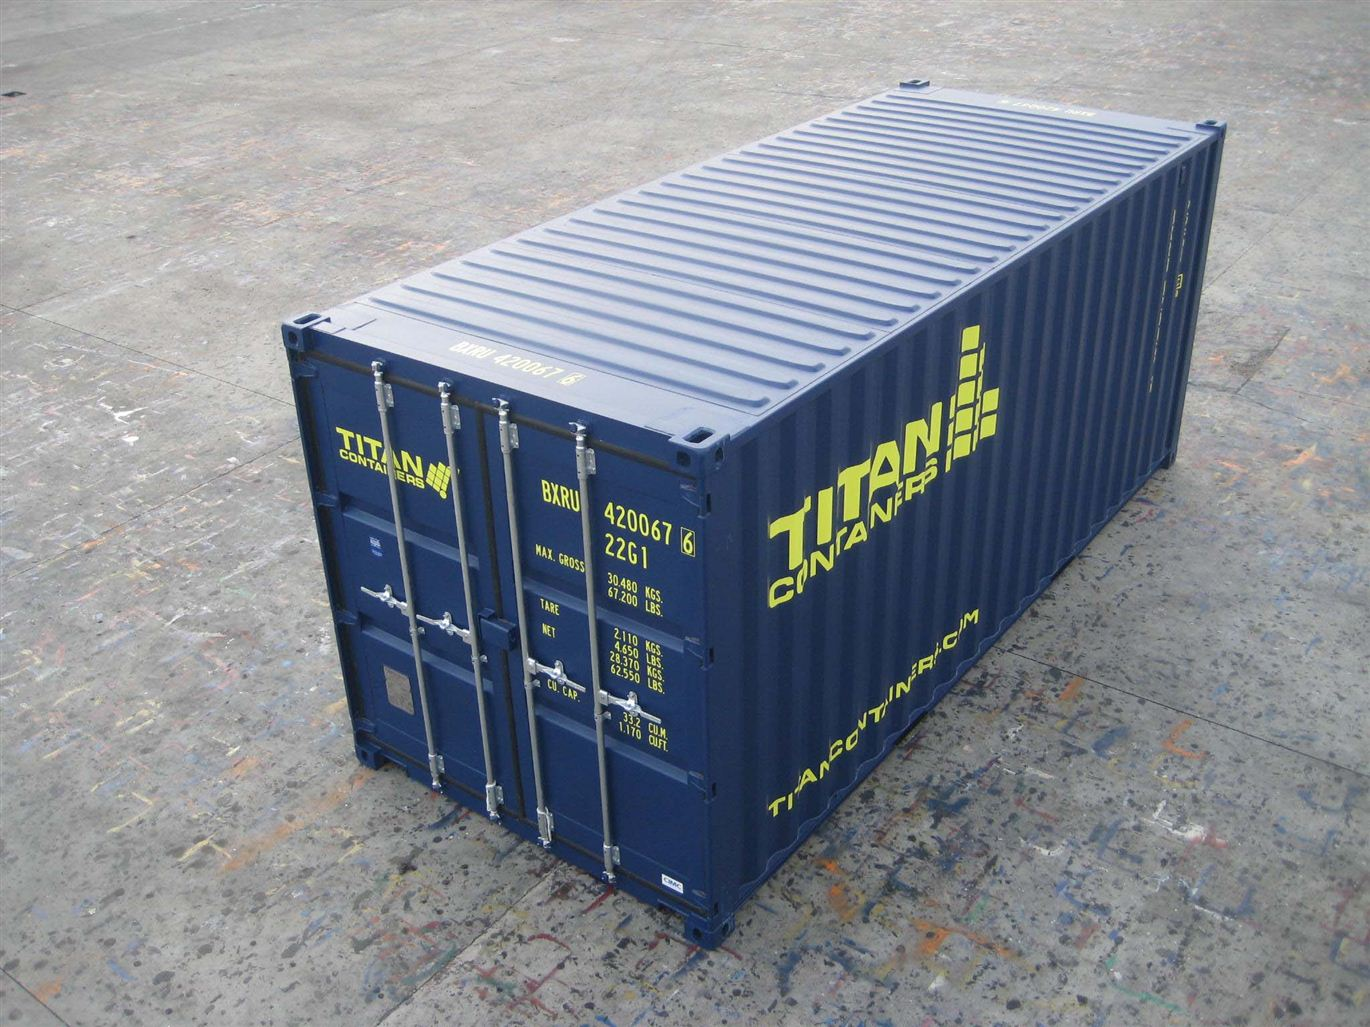 Titan Containers - Acrtic Store